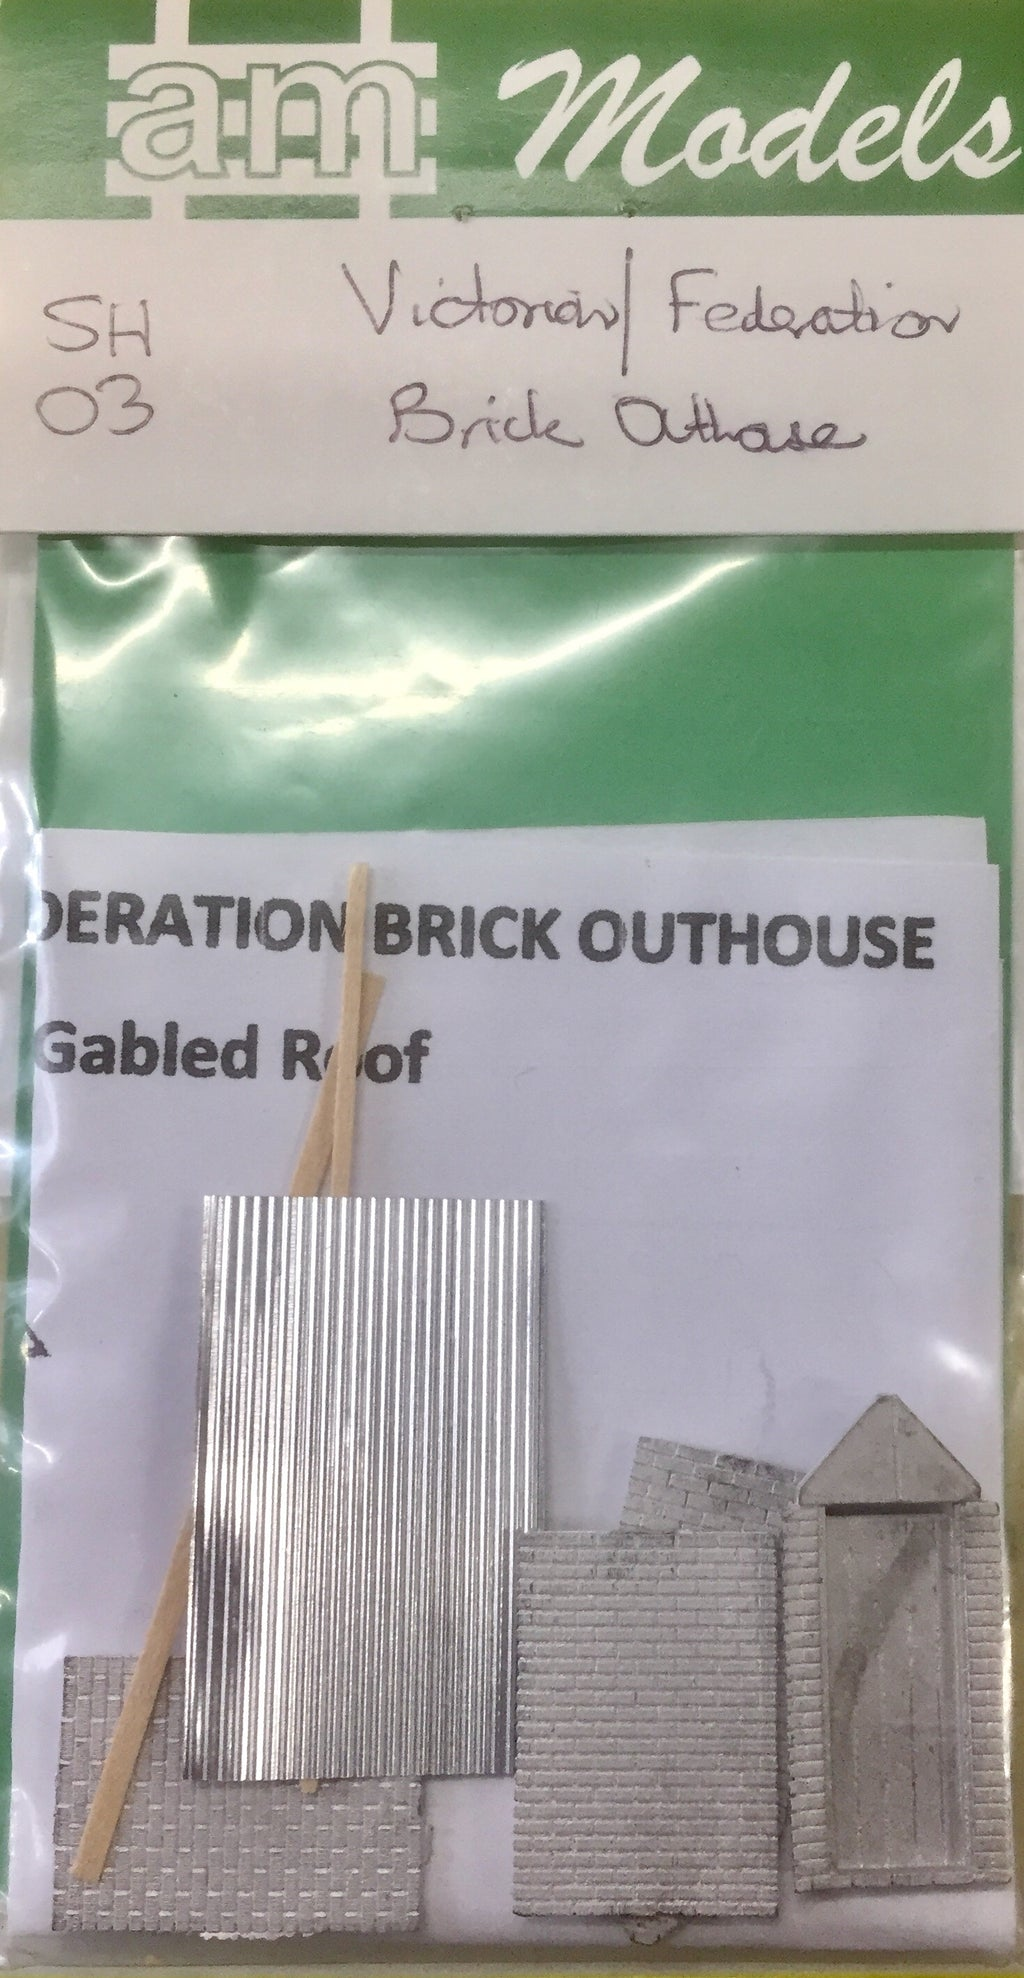 AM Models : SH03 VICTORIAN-FEDERATION BRICK OUTHOUSE KIT WITH GABLED ROOF.